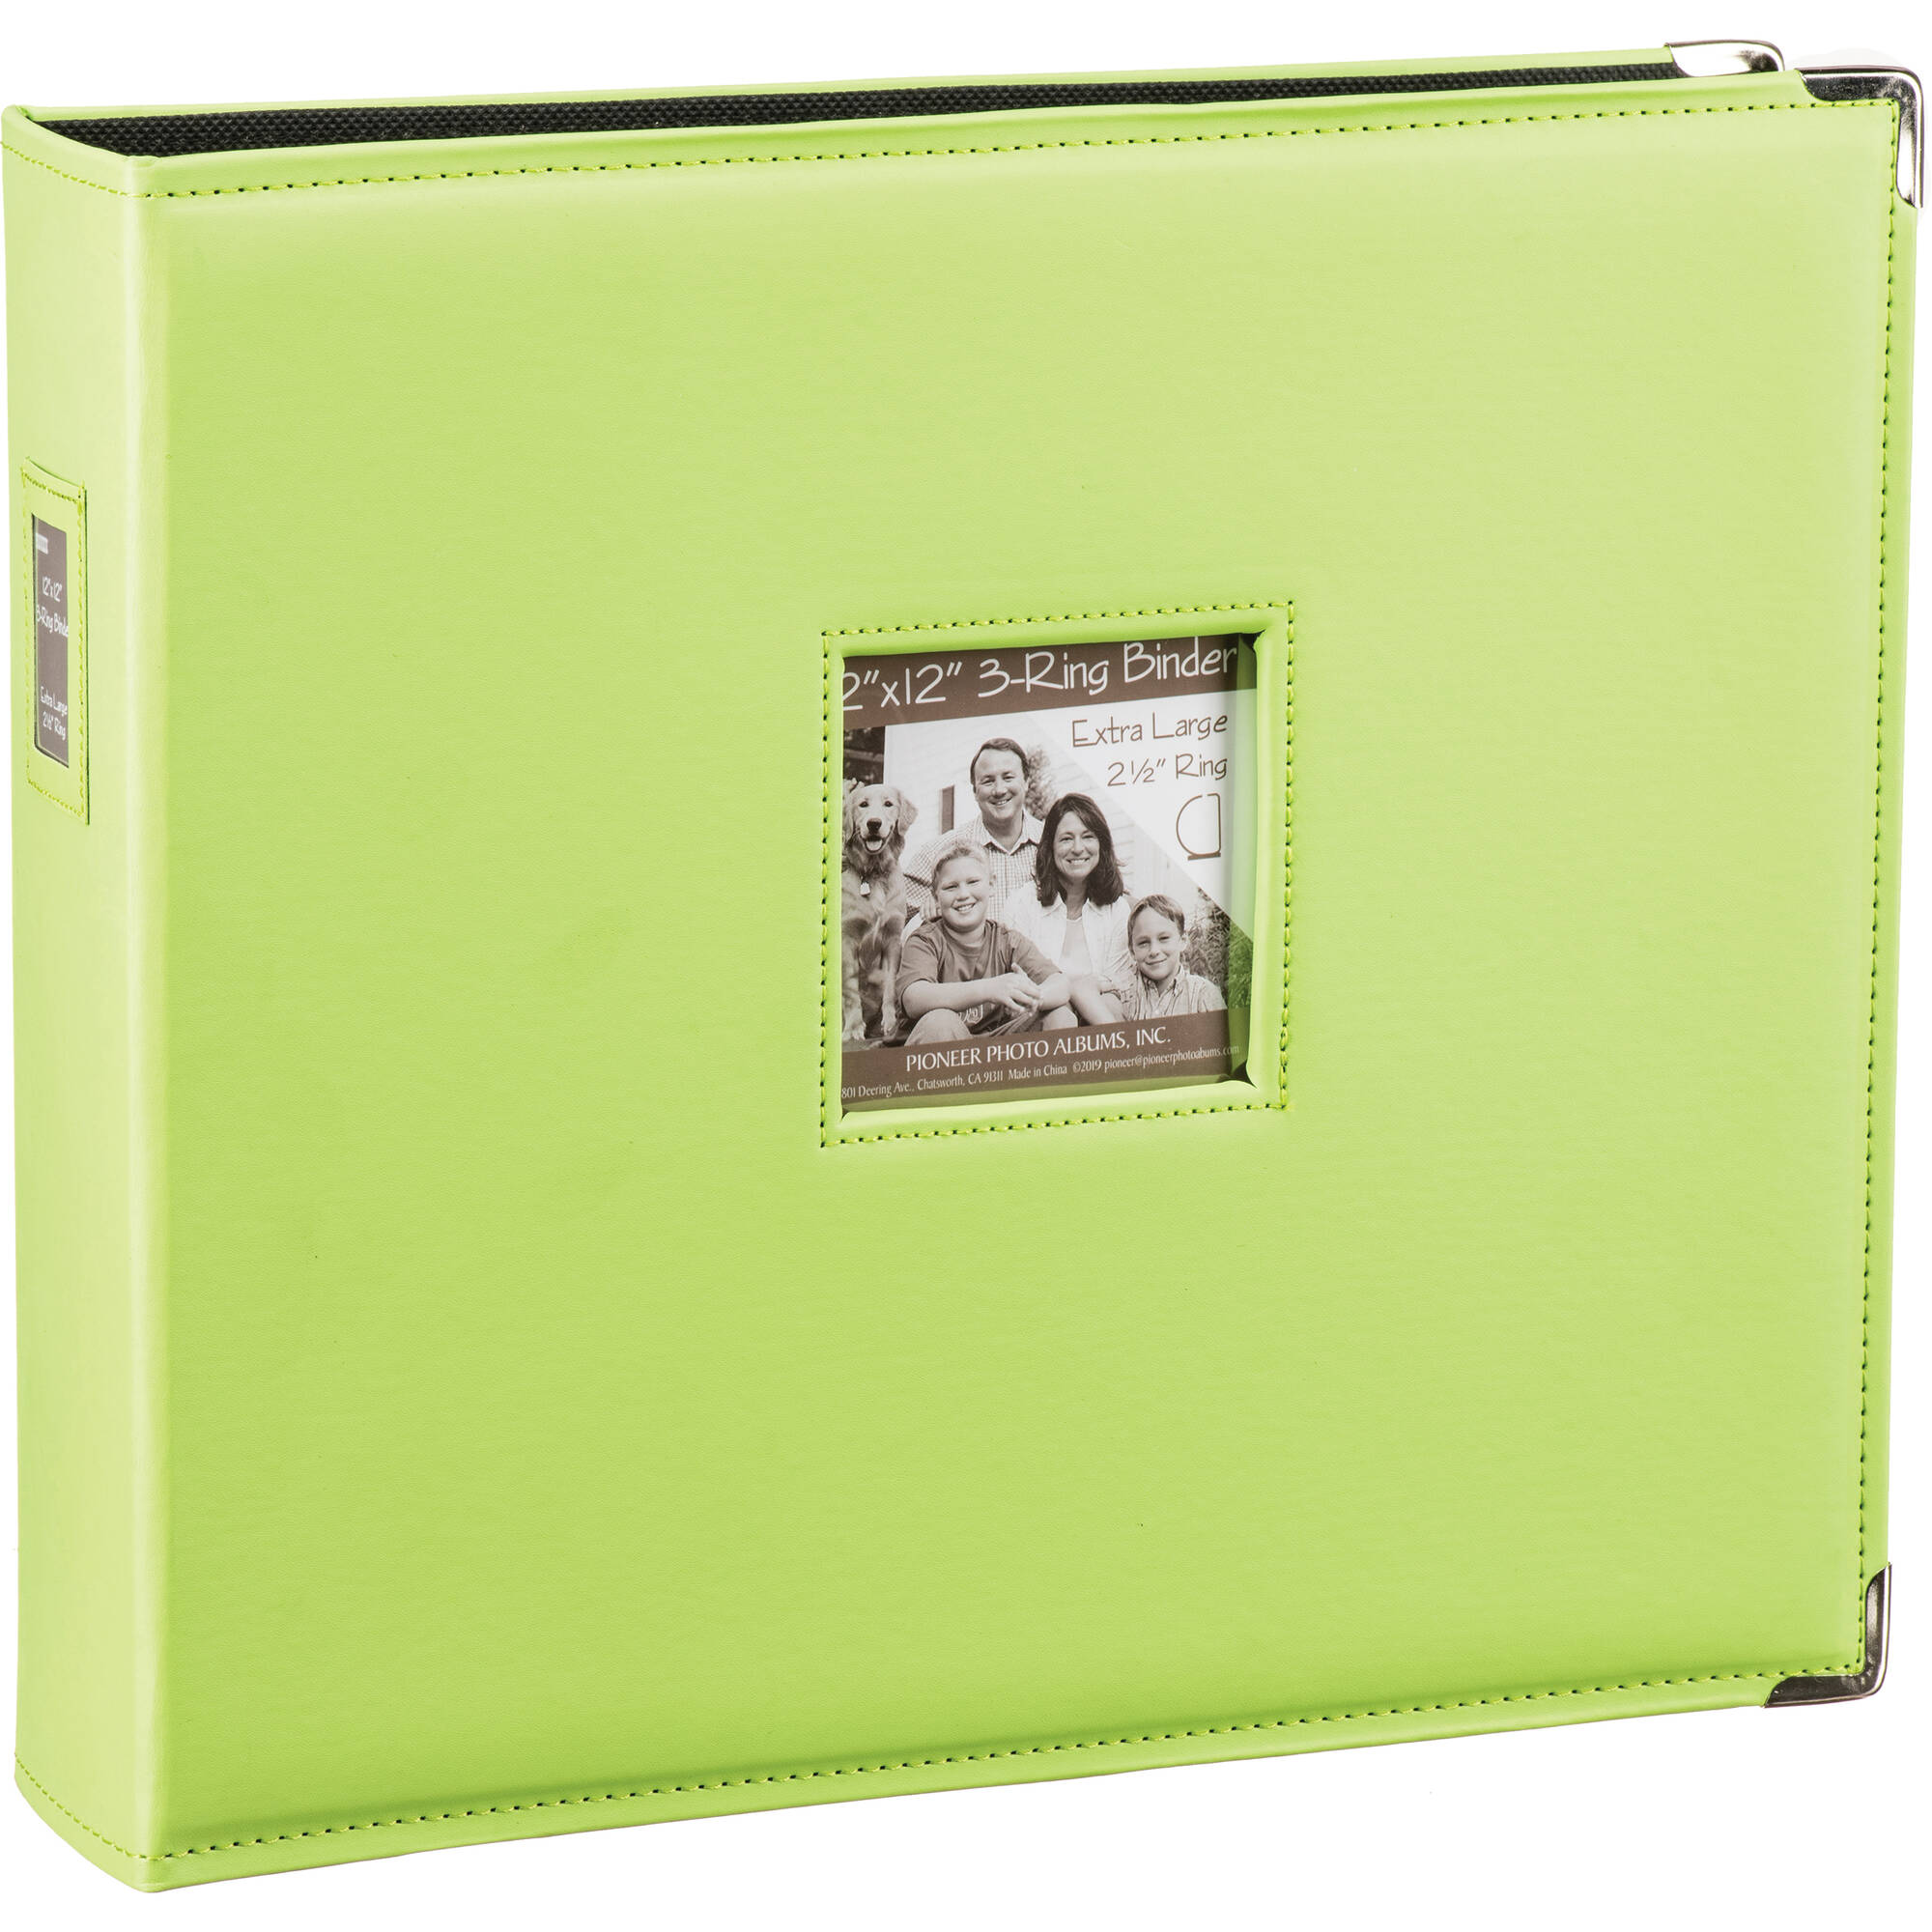 Pioneer Photo Albums T 12jf 12x12 3 Ring Binder T12jfcgn